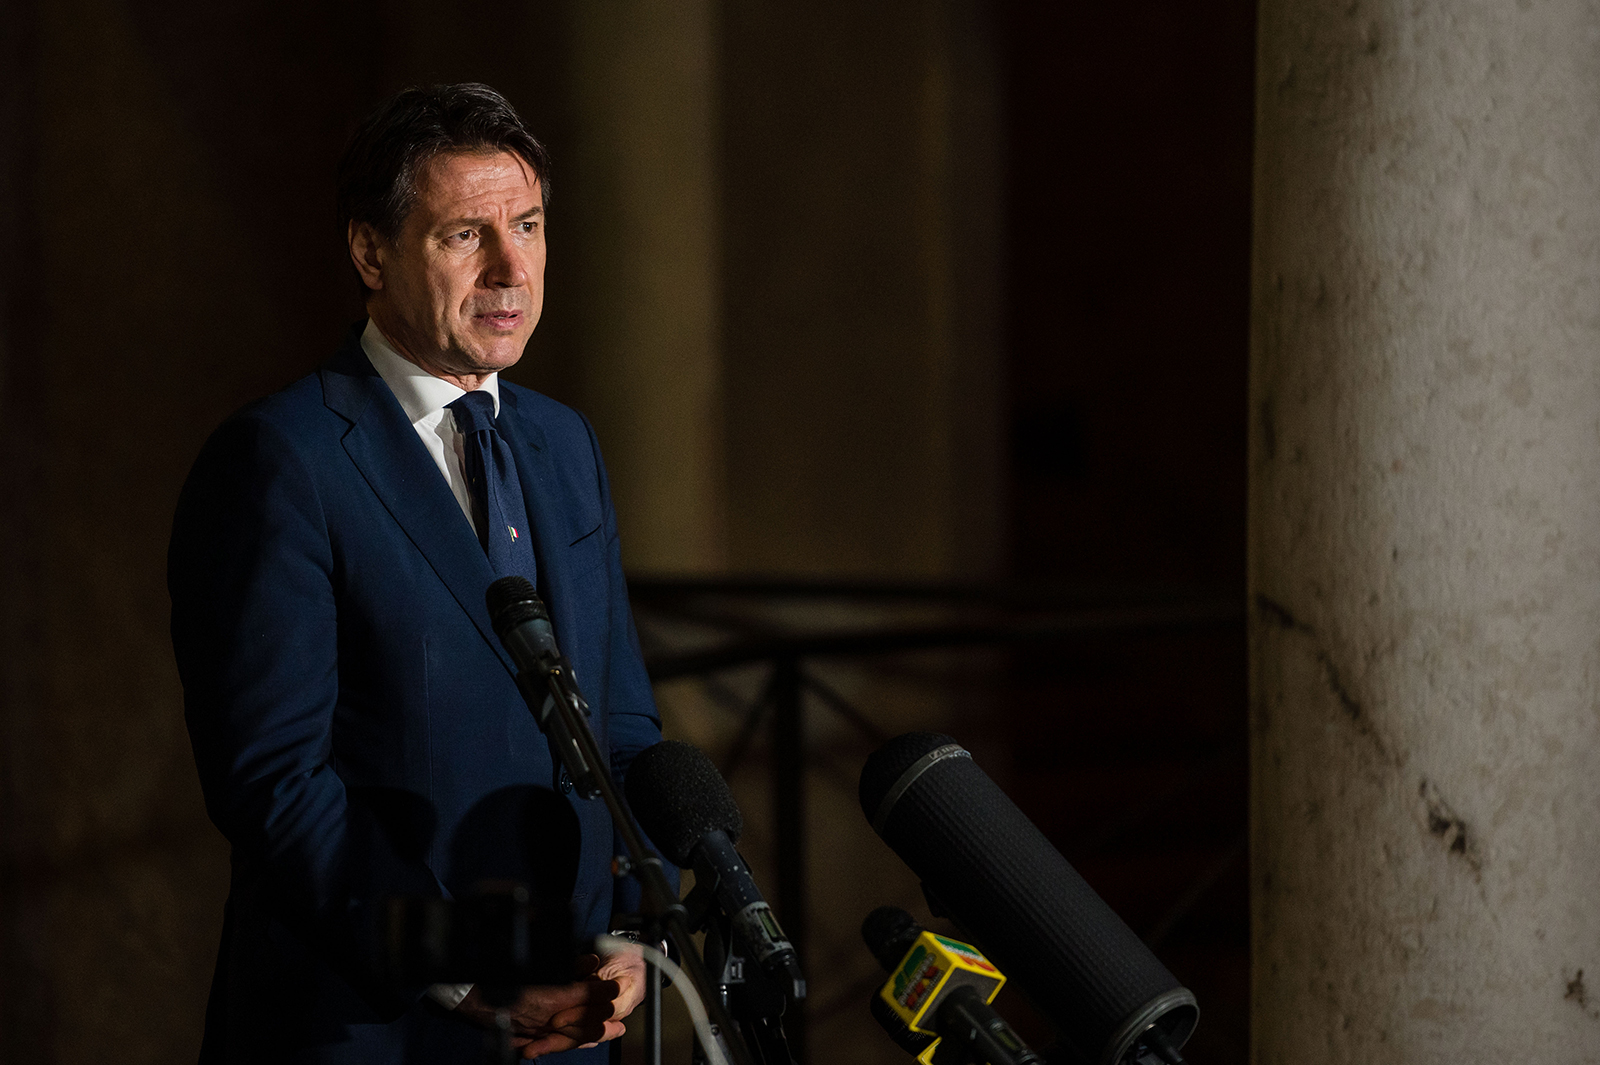 Italian Prime Minister Giuseppe Conte makes a statement to journalists in Cremona, Italy, on April 28.